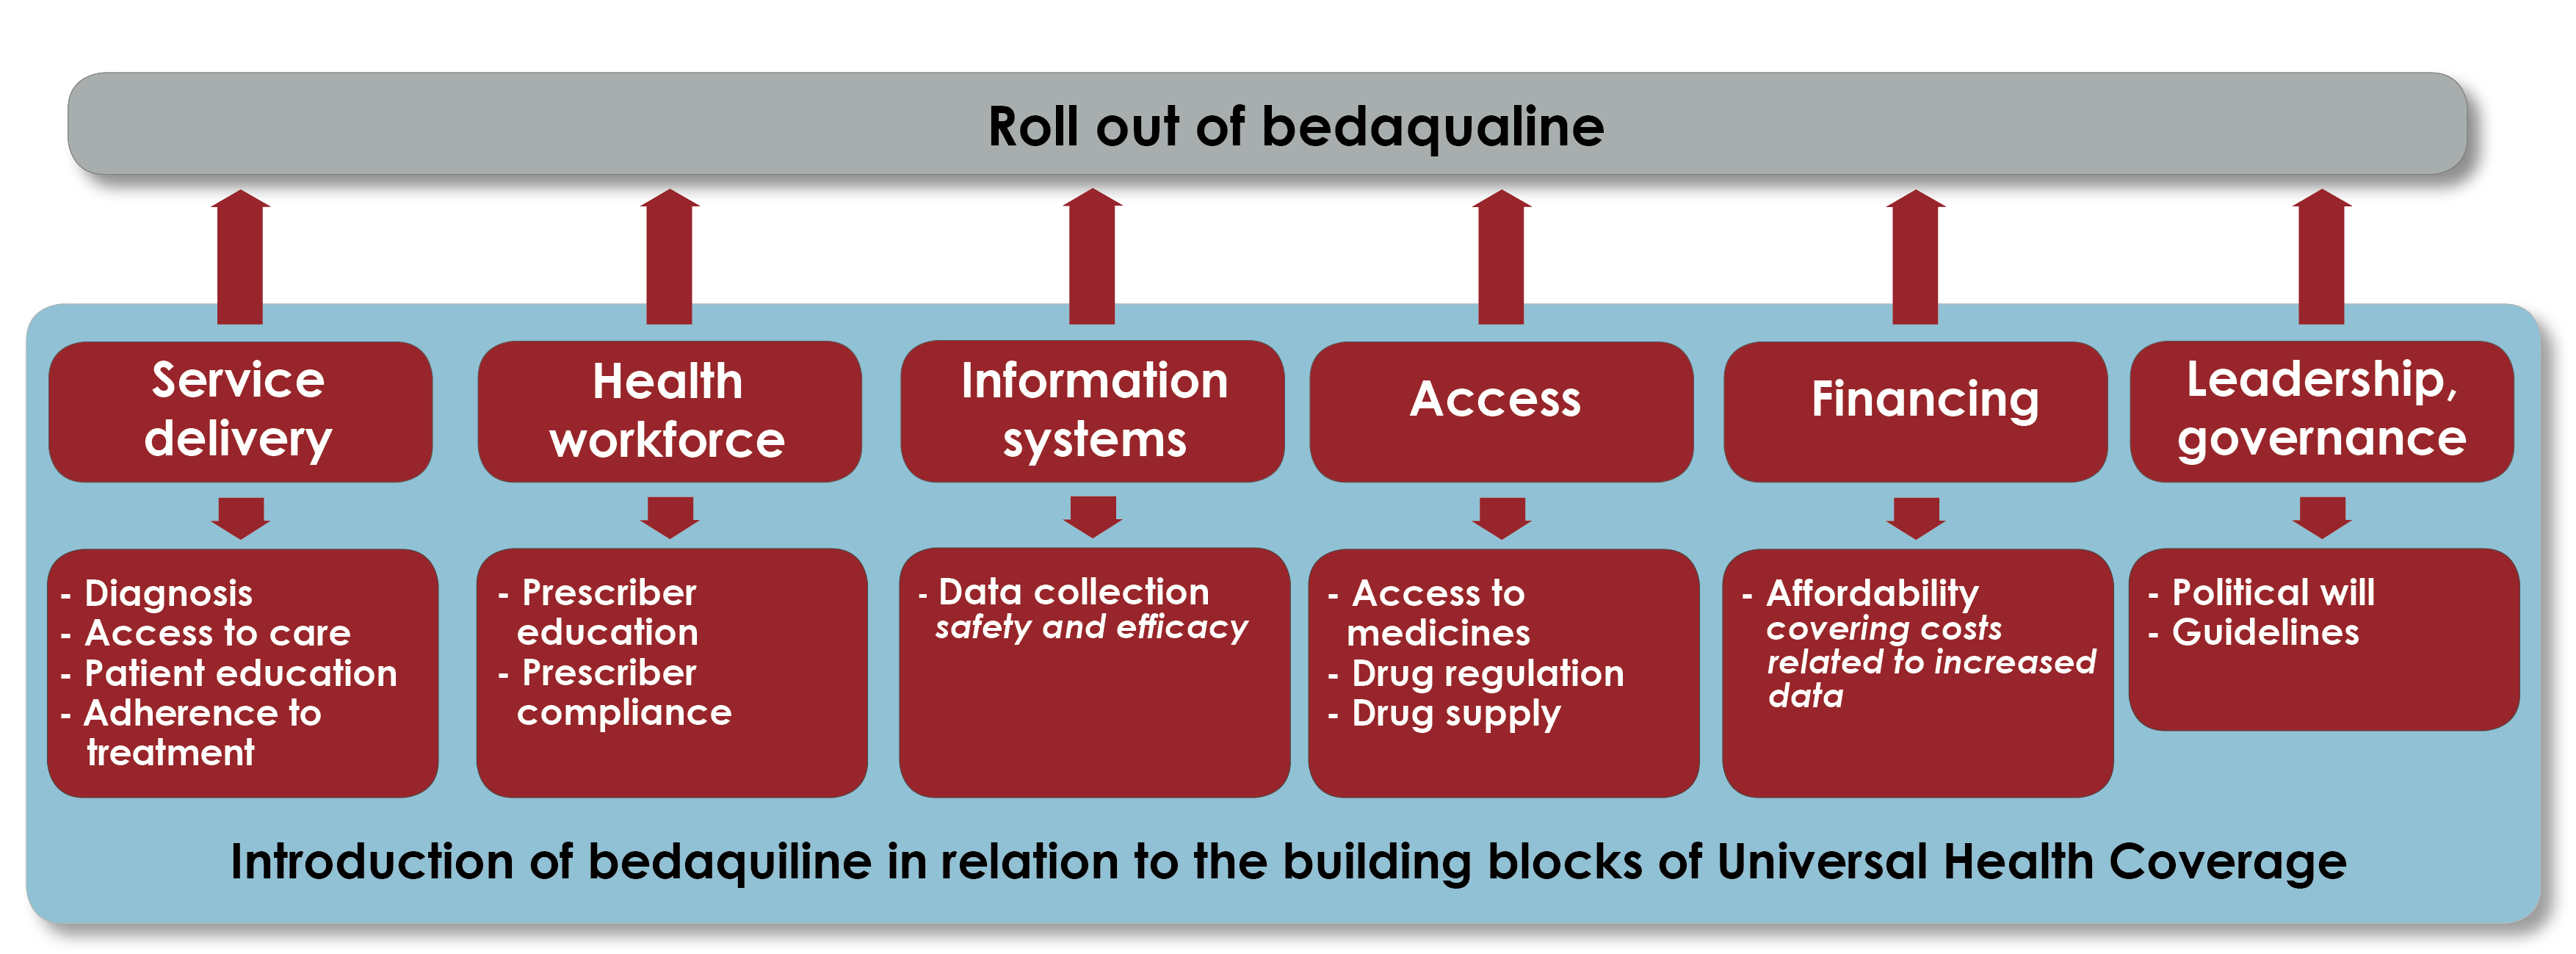 Infography showing connections between sustainable use of antibiotics and health system components